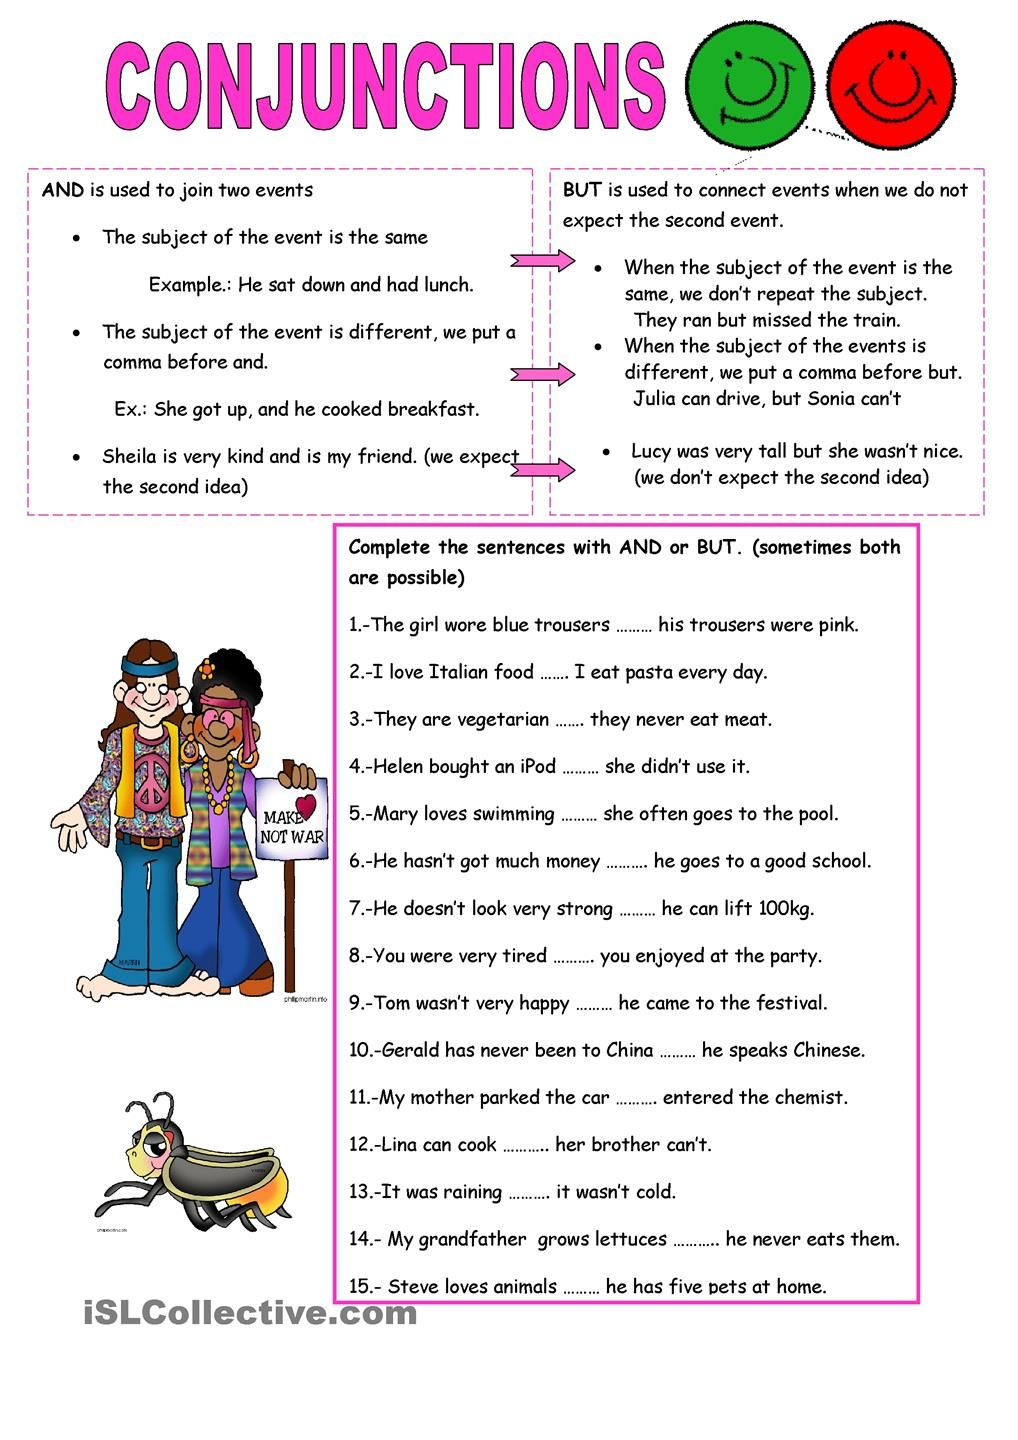 Conjunction Worksheet 3rd Grade Conjunctions and but